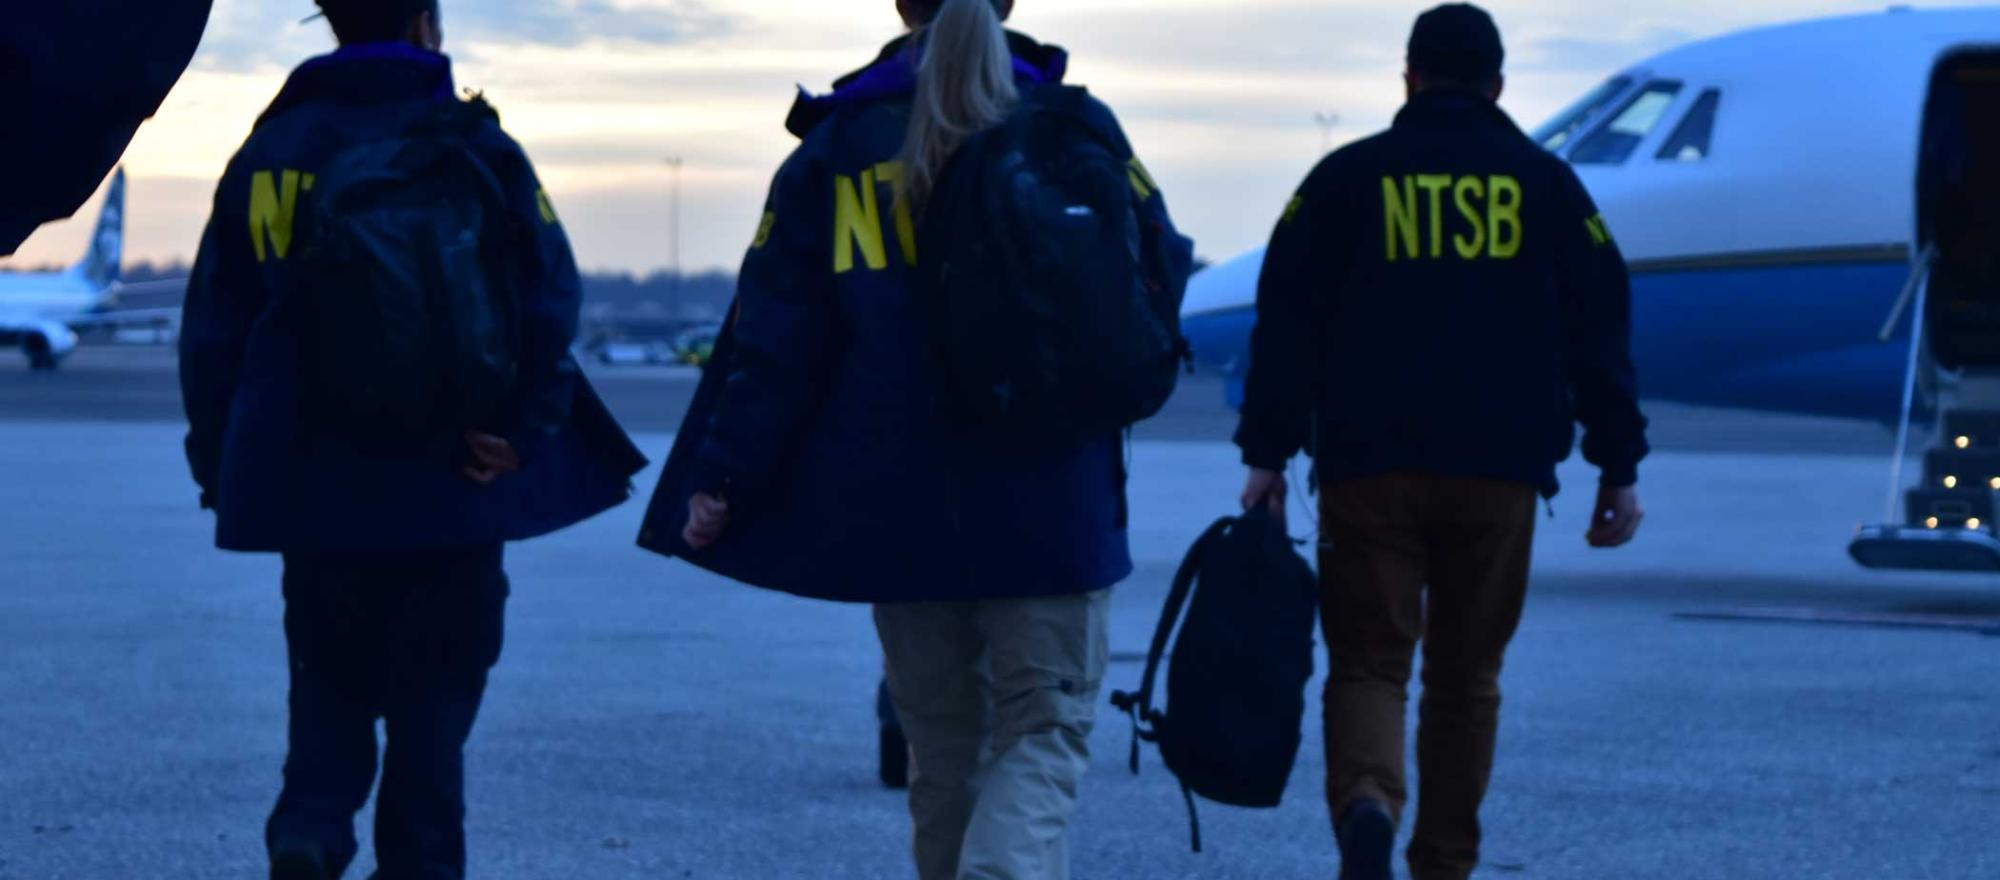 NTSB workers